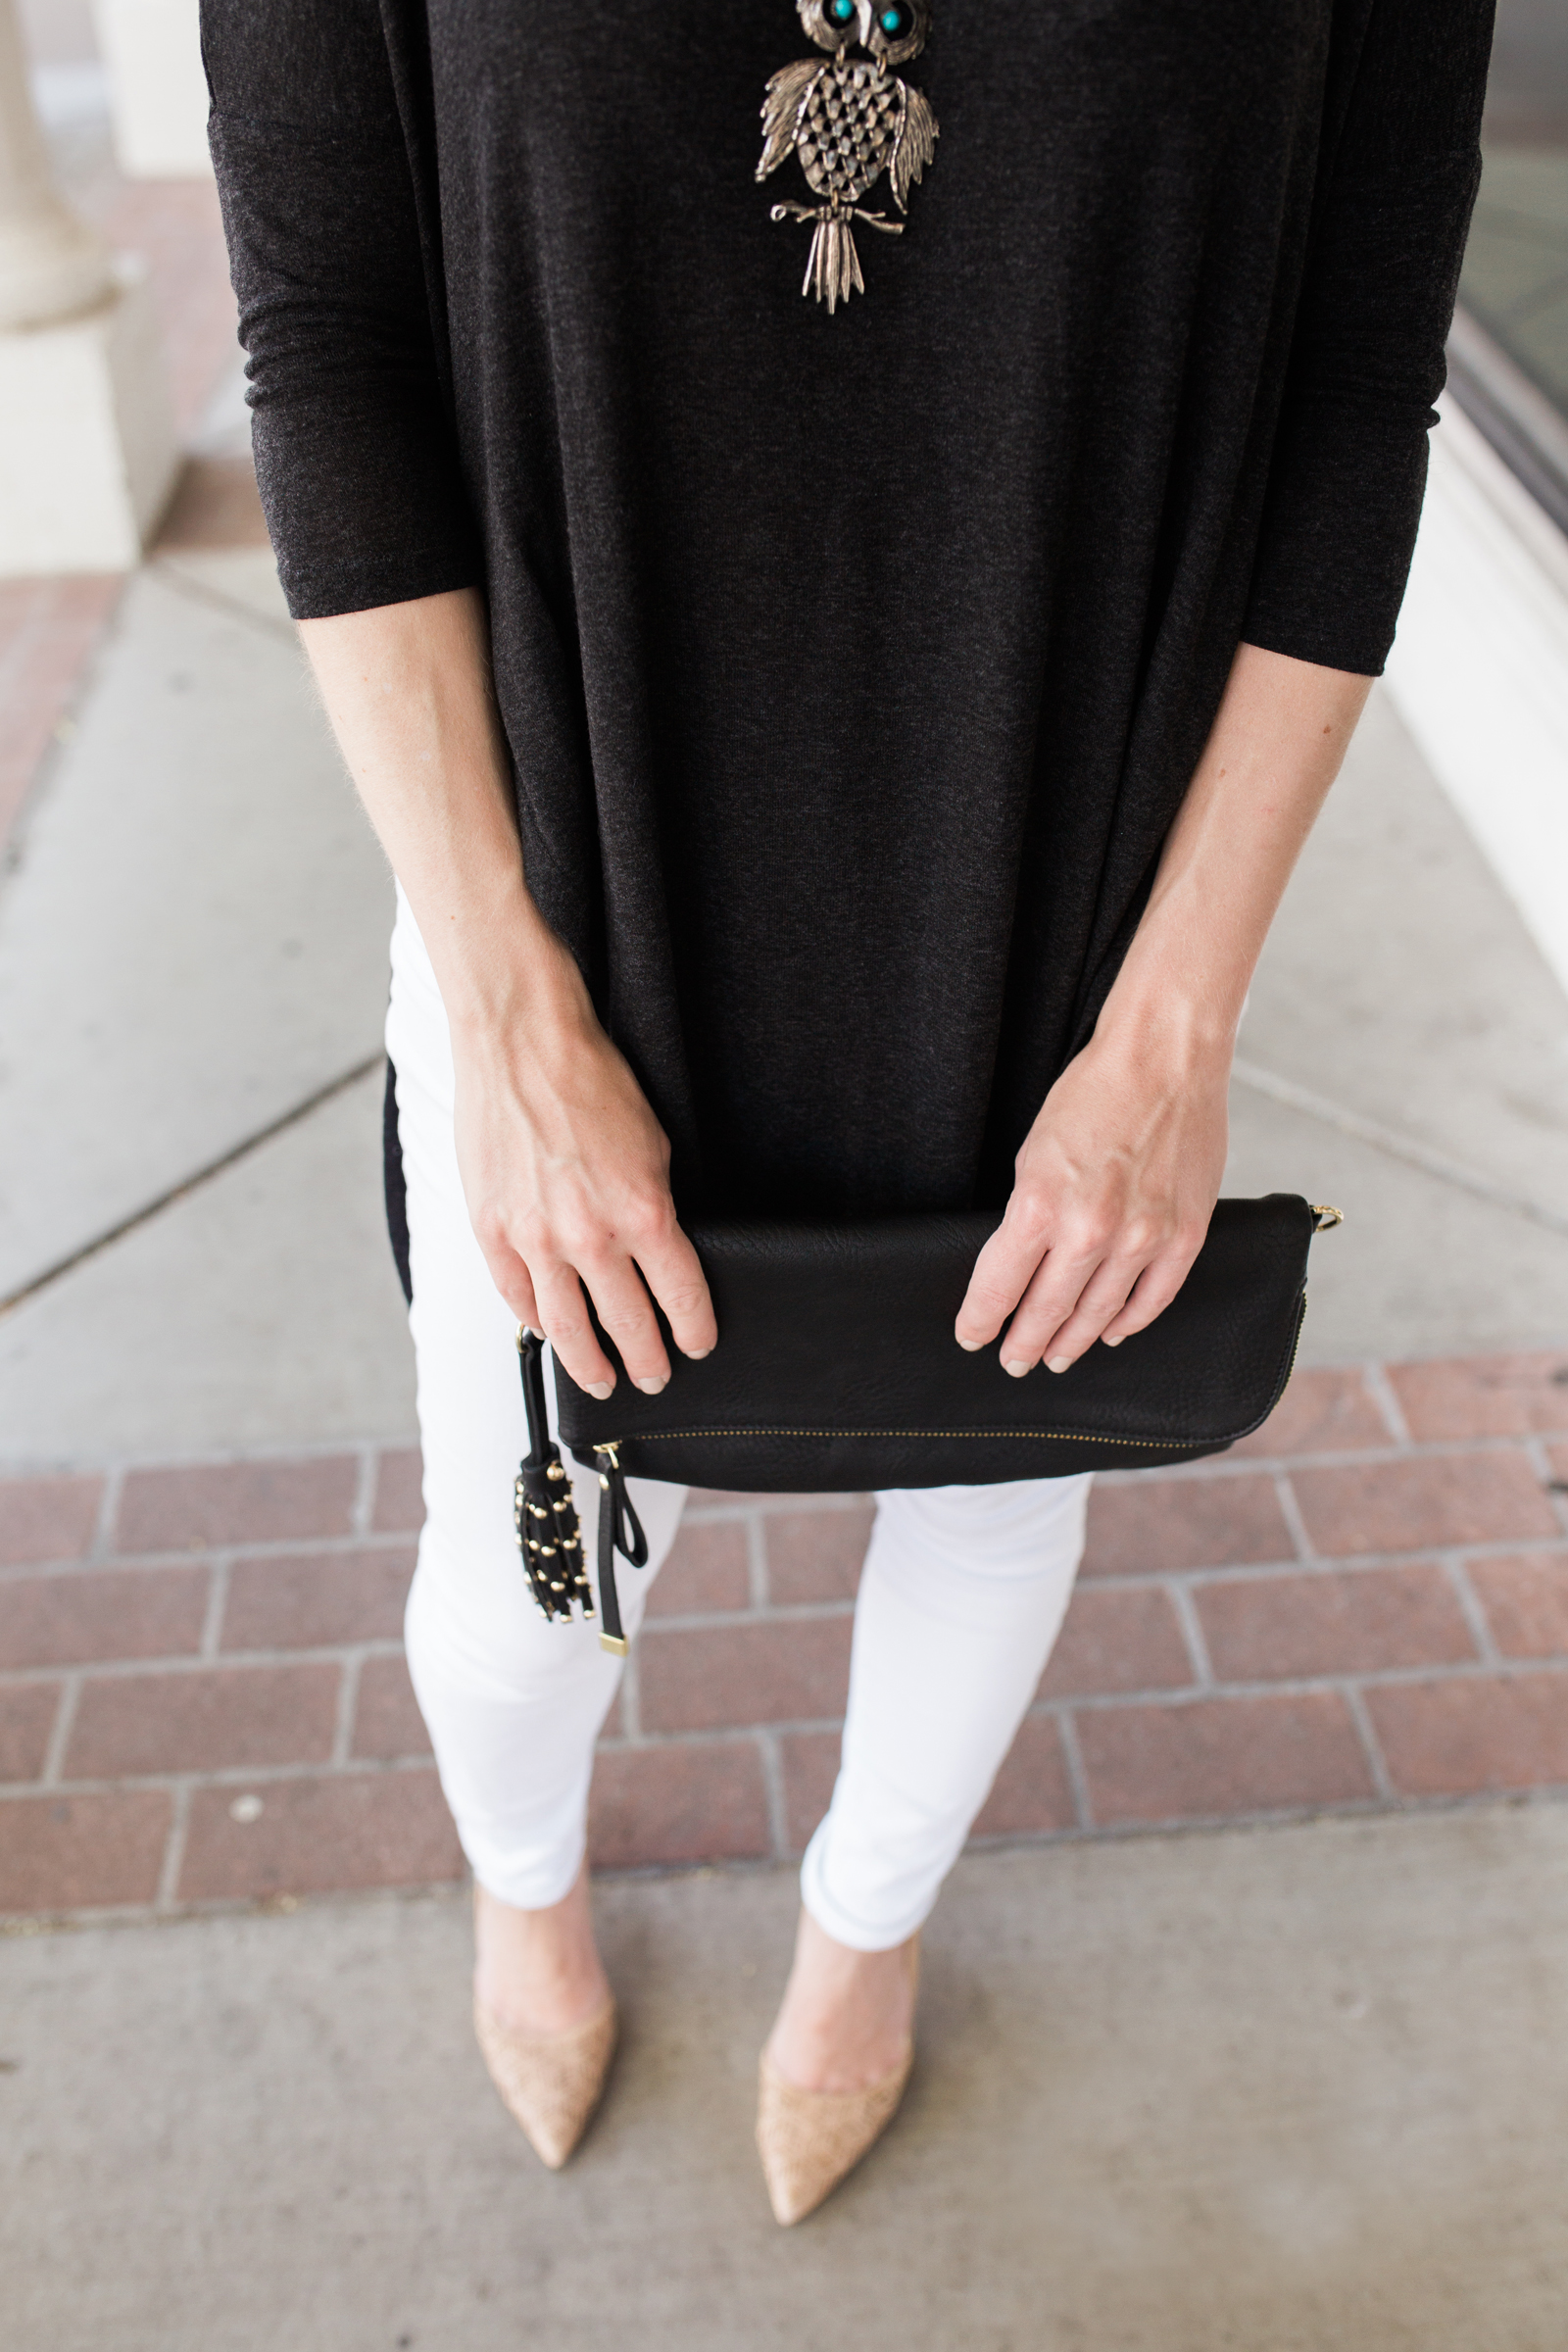 Gray Tunic and Black Clutch